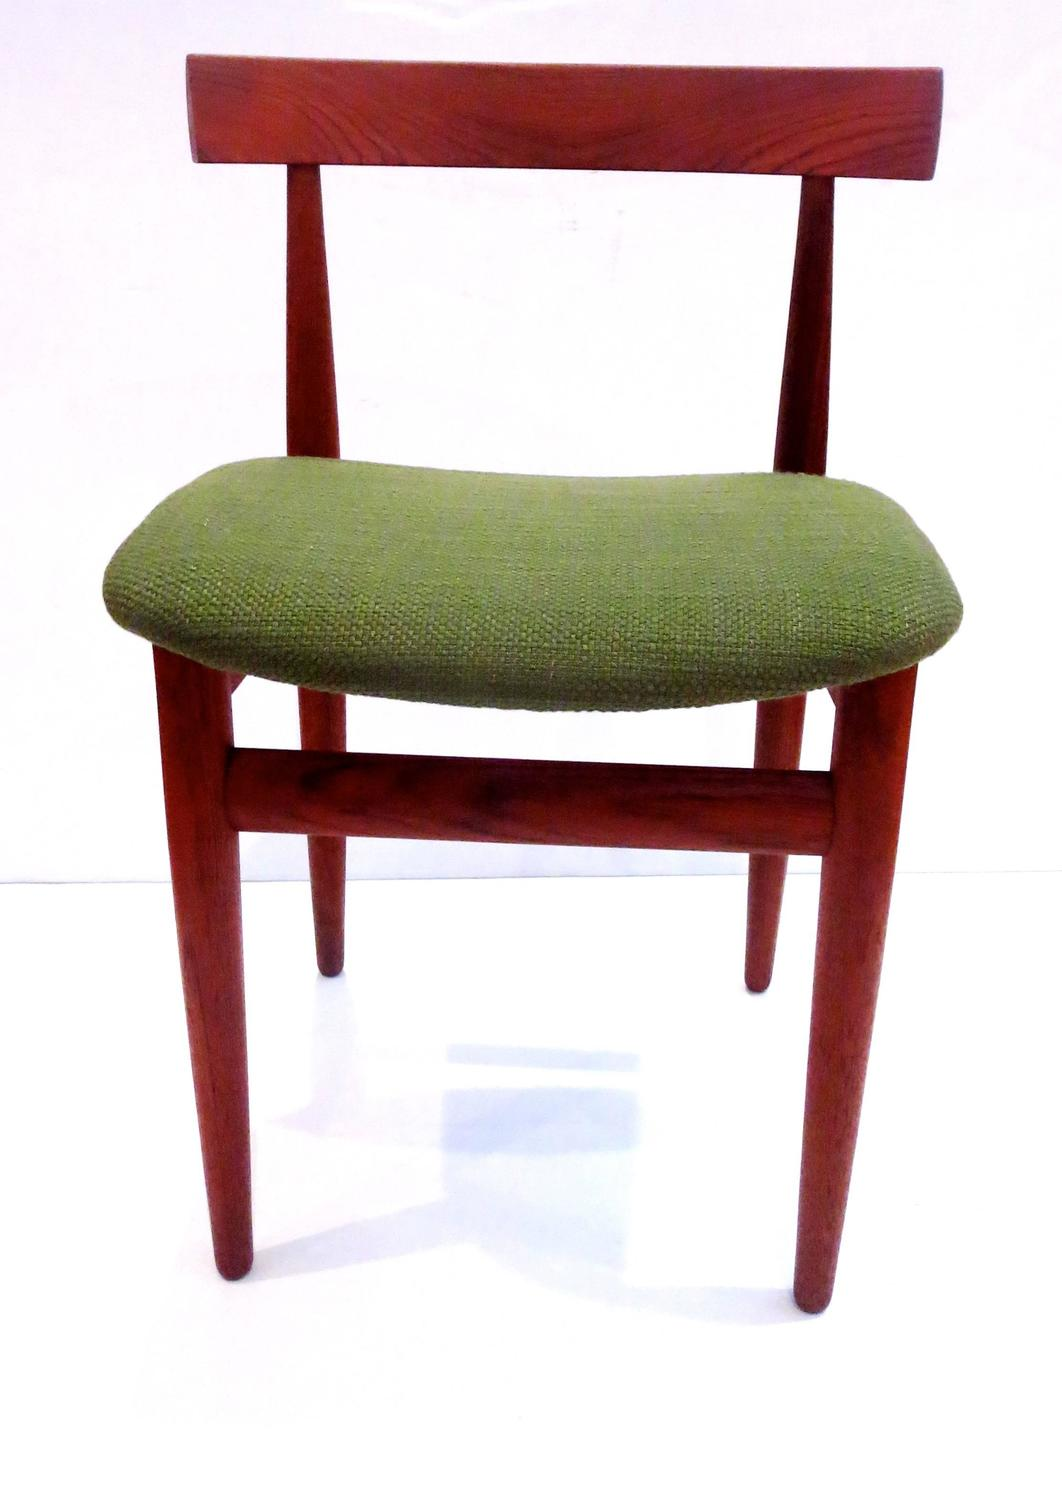 1950s danish modern solid teak side chair design by hans olsen for